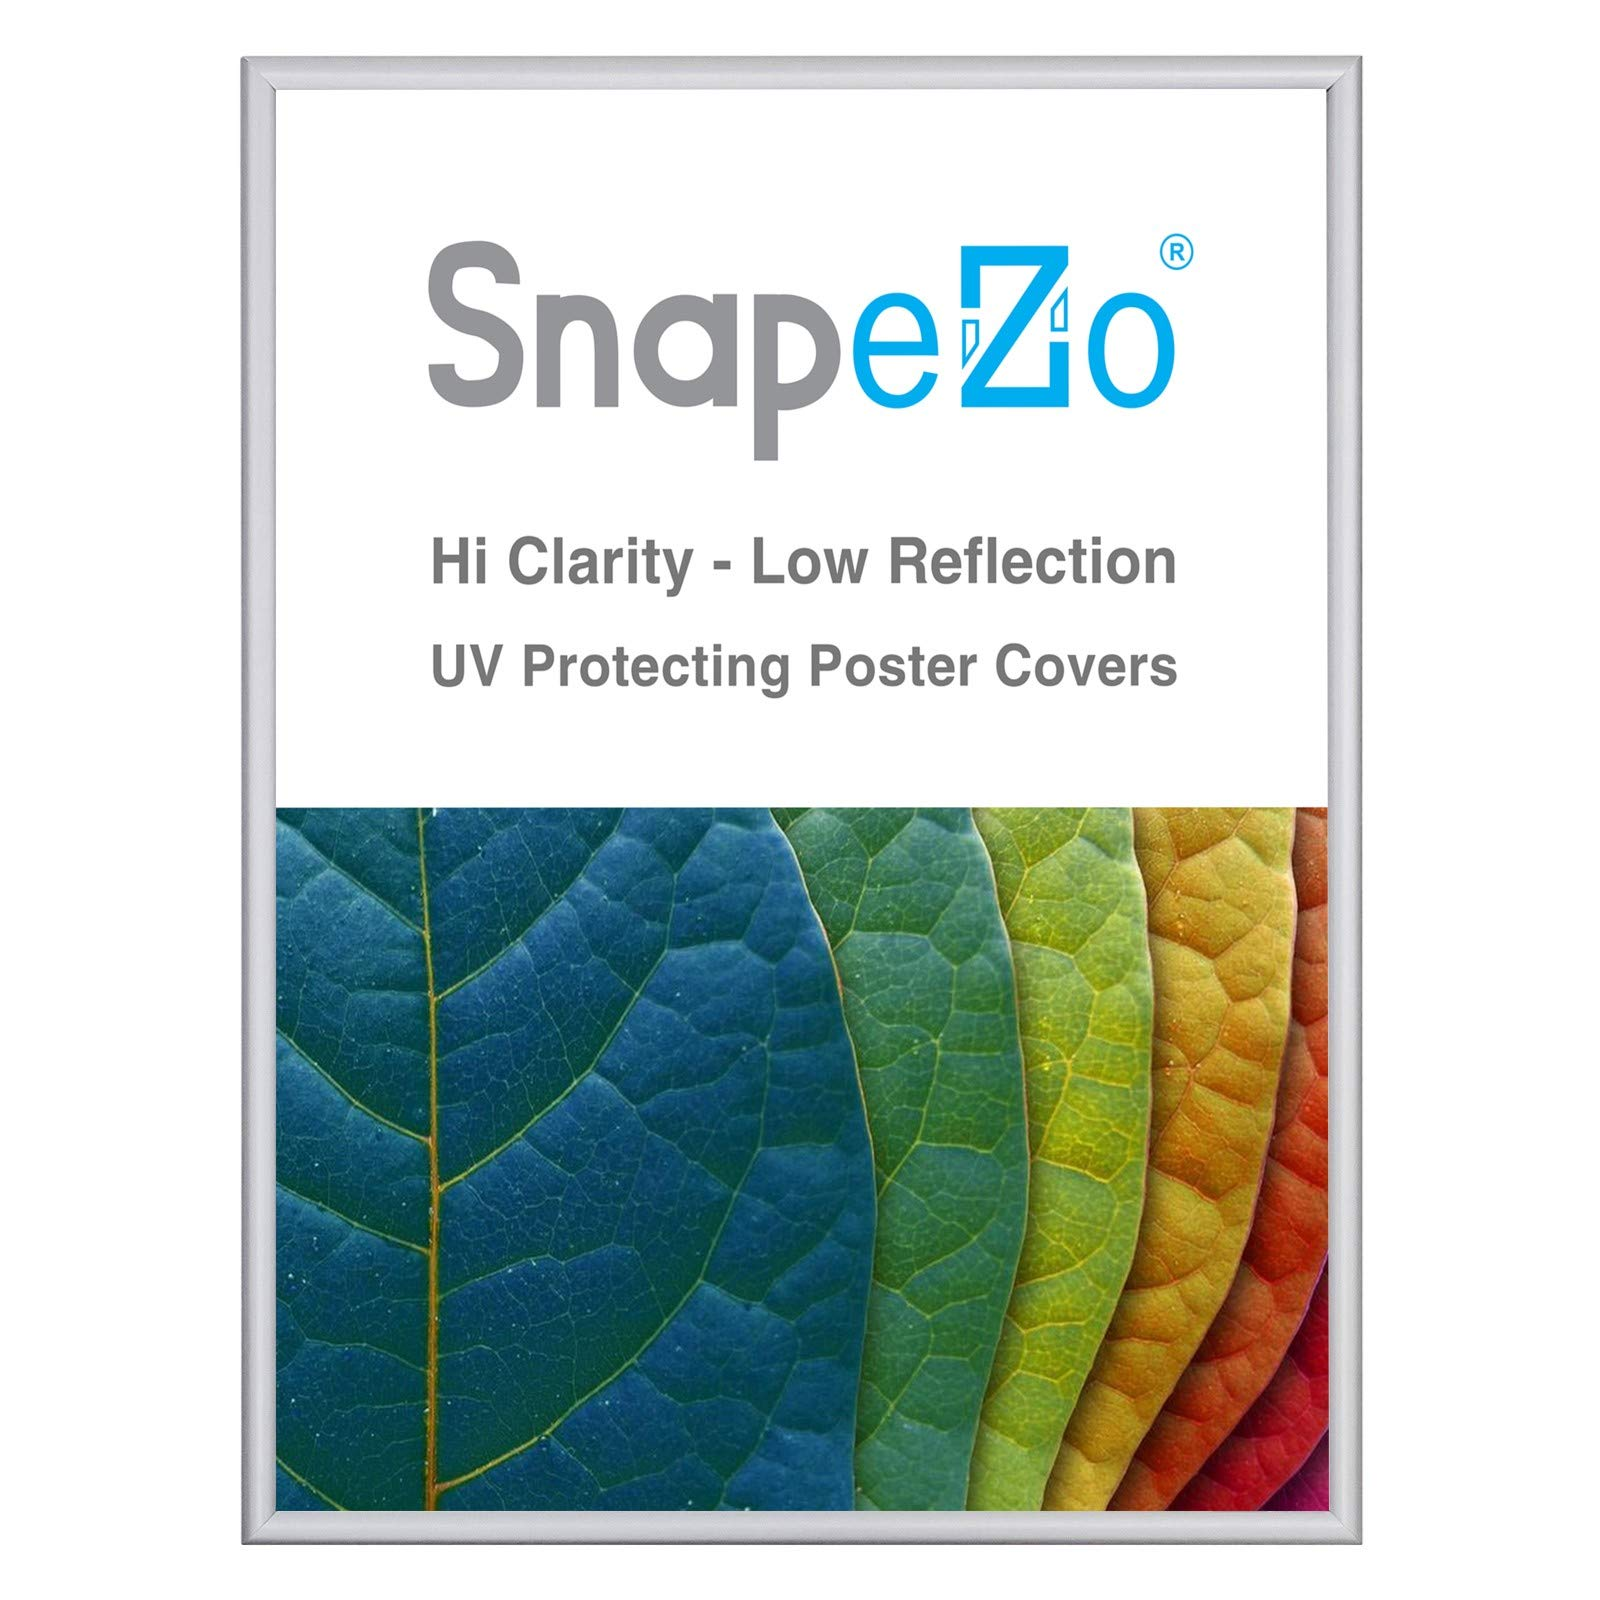 SnapeZo Picture Frame 18x24, Silver Super-Slim Series 0.6 Inch Aluminum Profile, Front-Loading Snap Frame, Wall Mounting